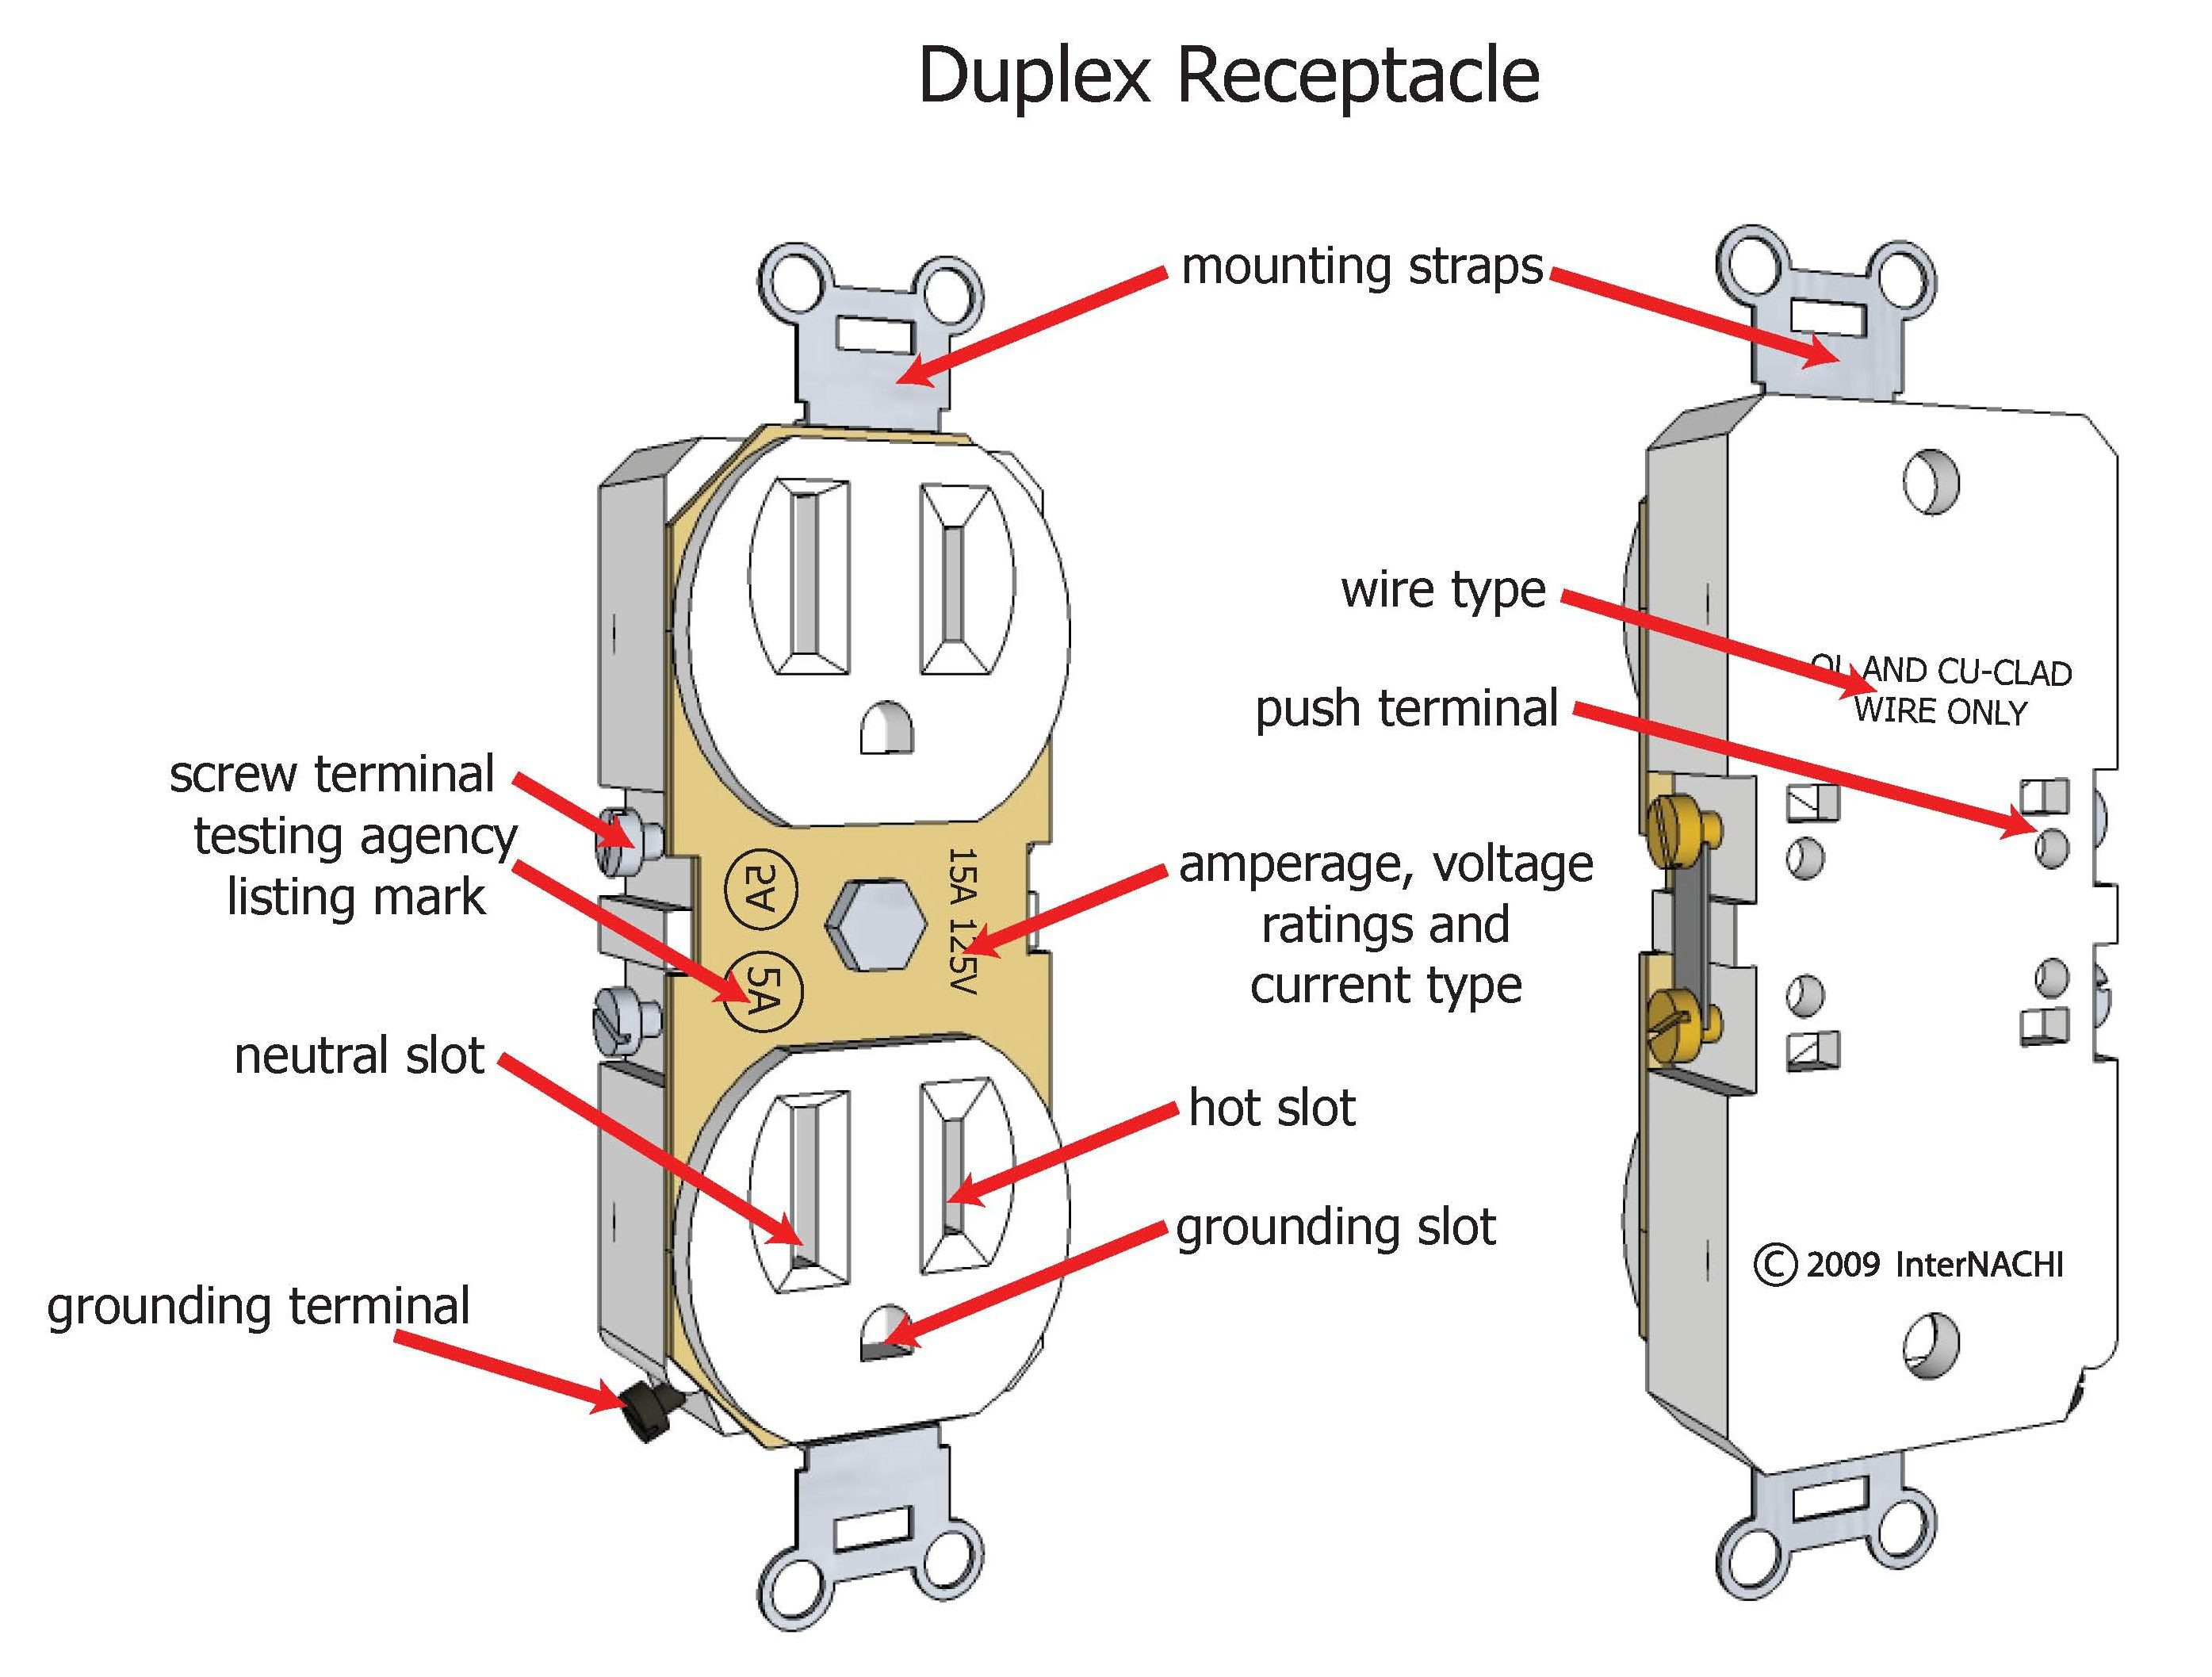 3 way switch wiring diagram junction box with load in middle line at one switch